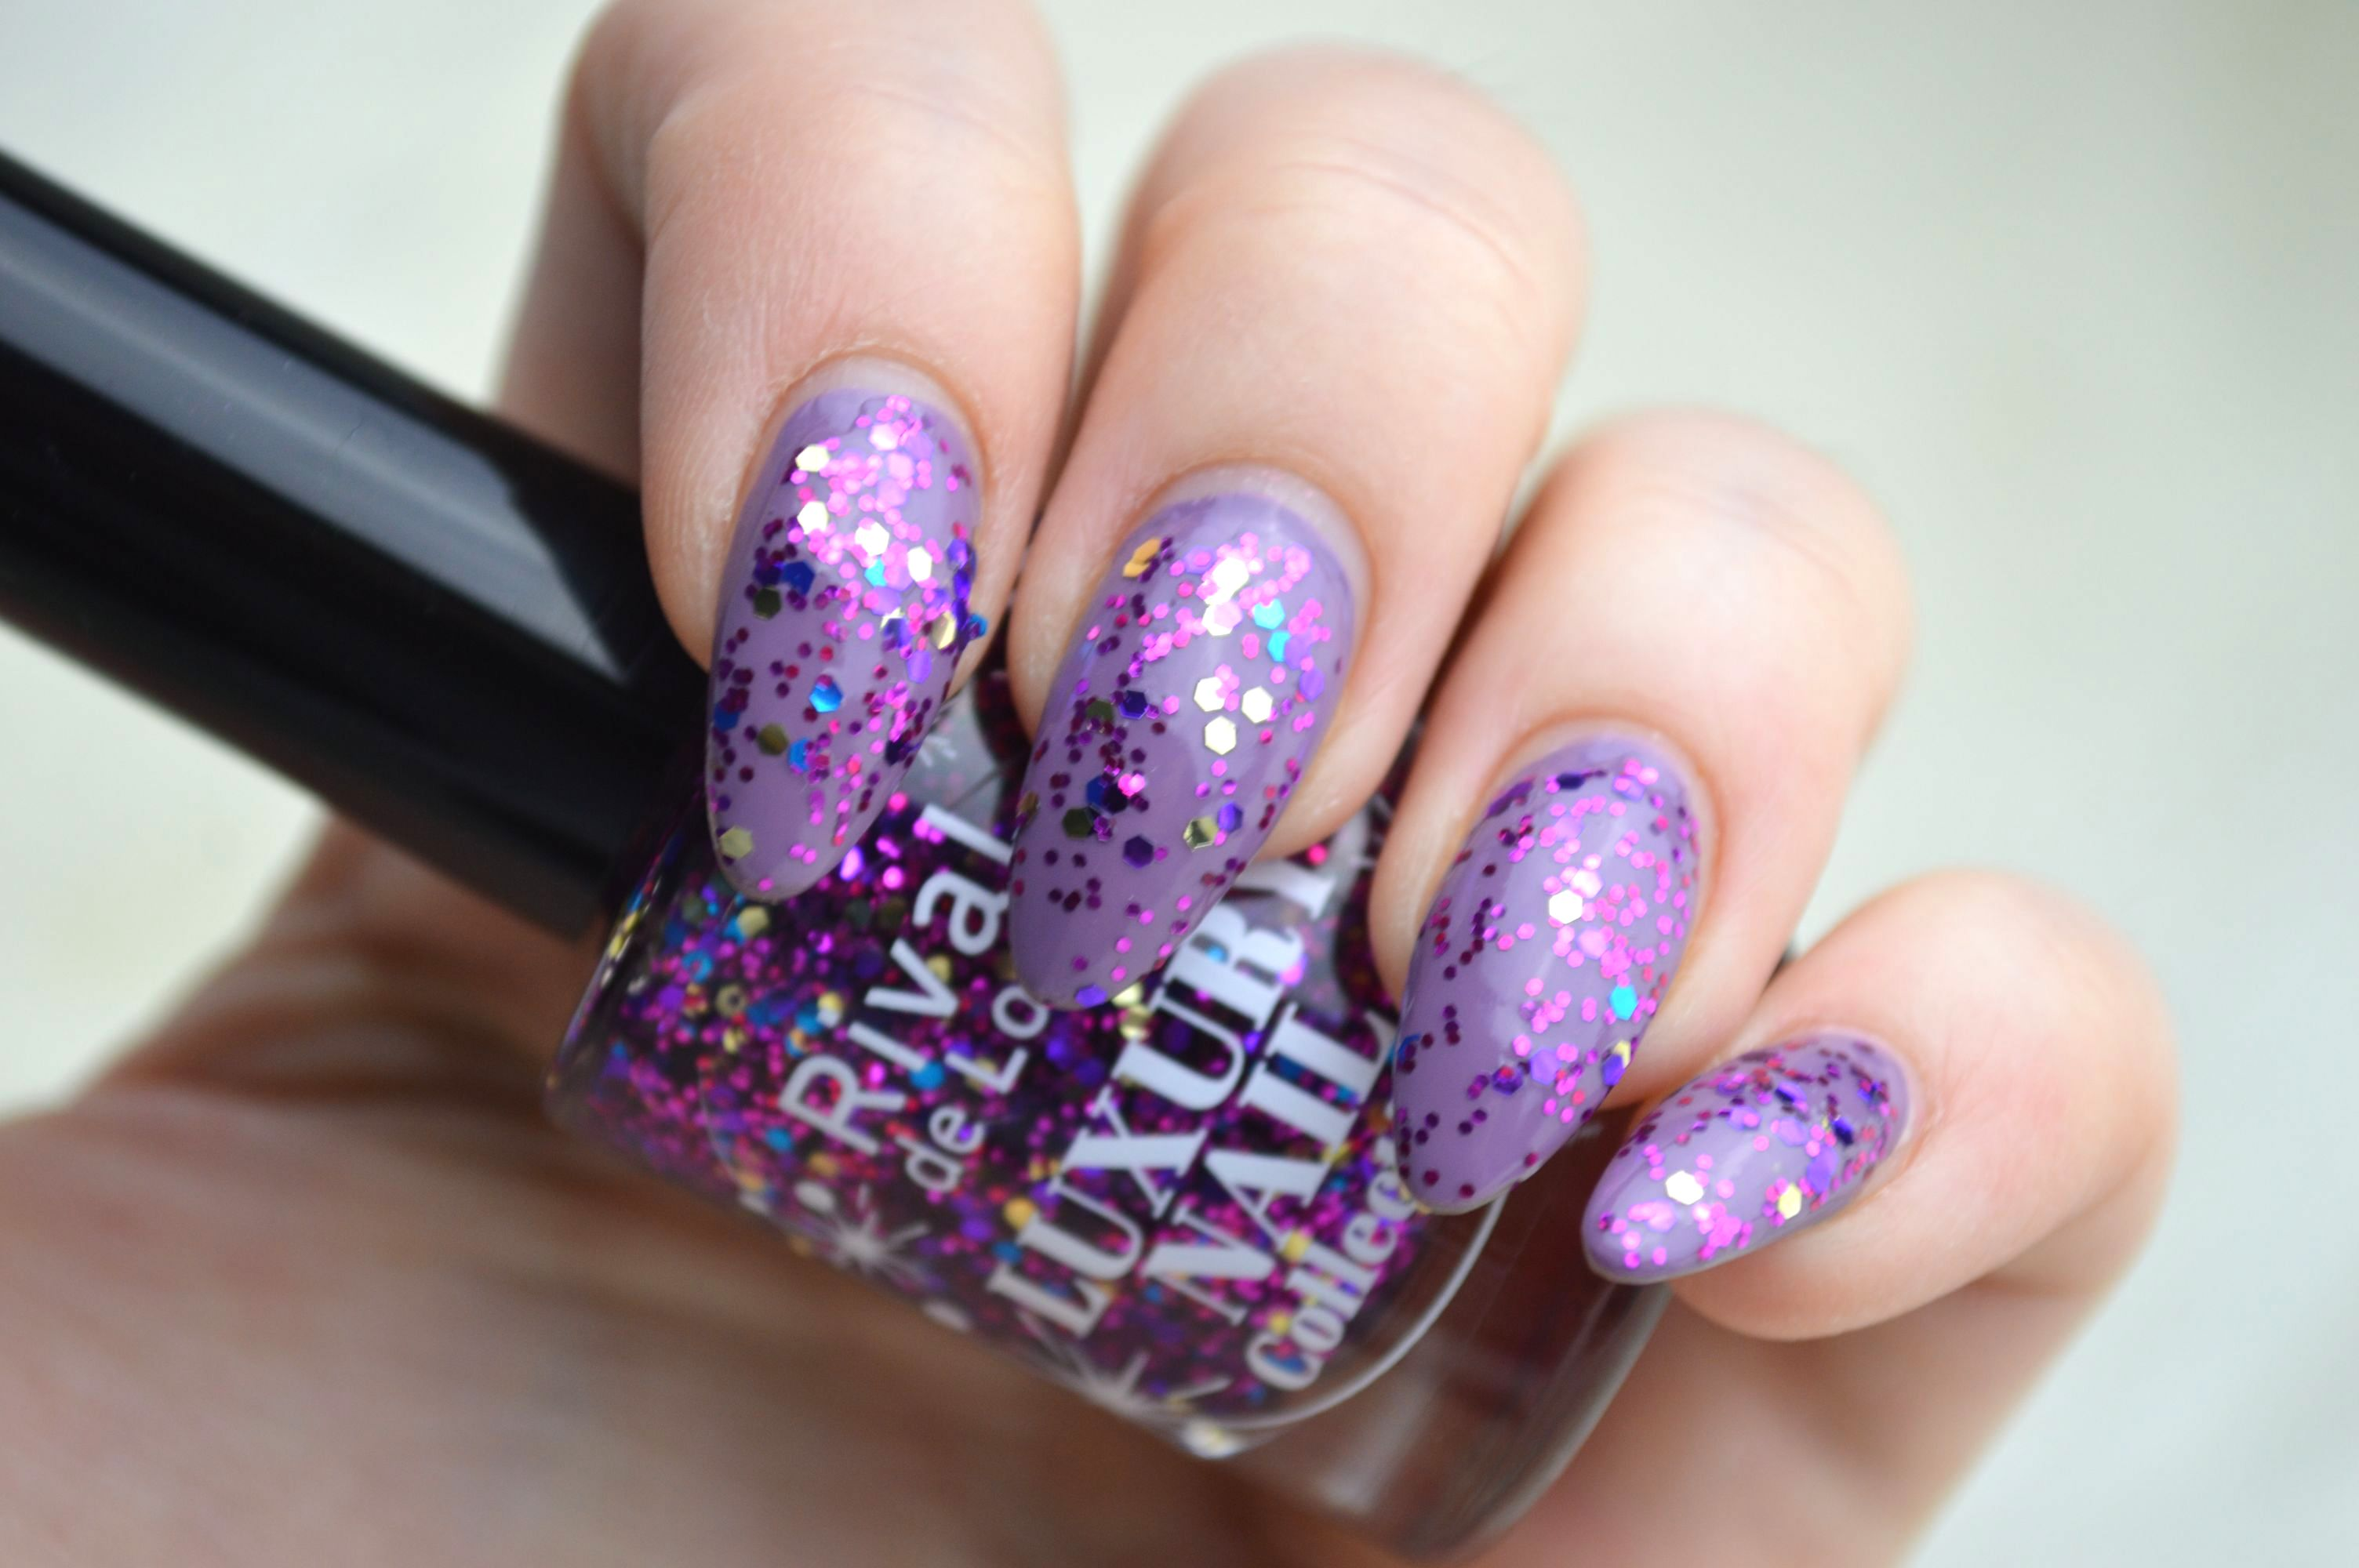 Rival_de_Loop_Glitter_Lilac_Essie_Warm_and_Toasty_Turtleneck